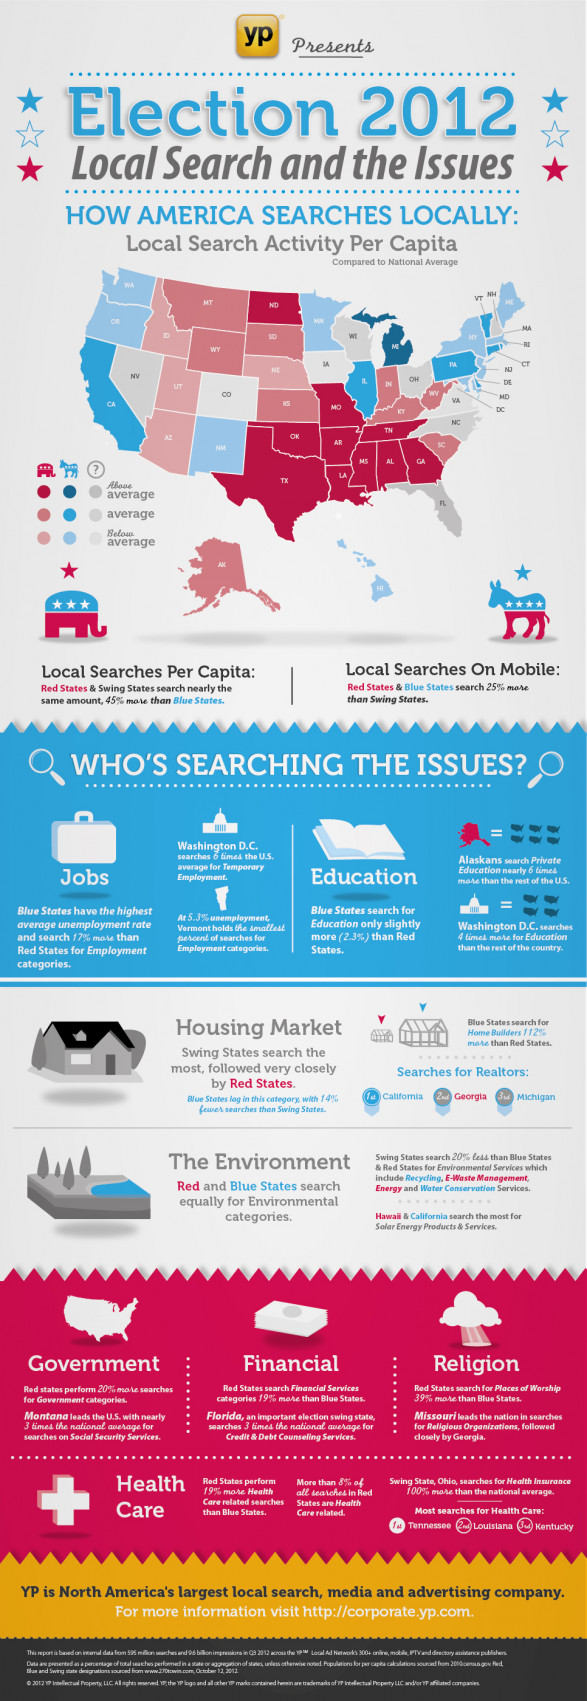 Election 2012: Local Search and the Issues